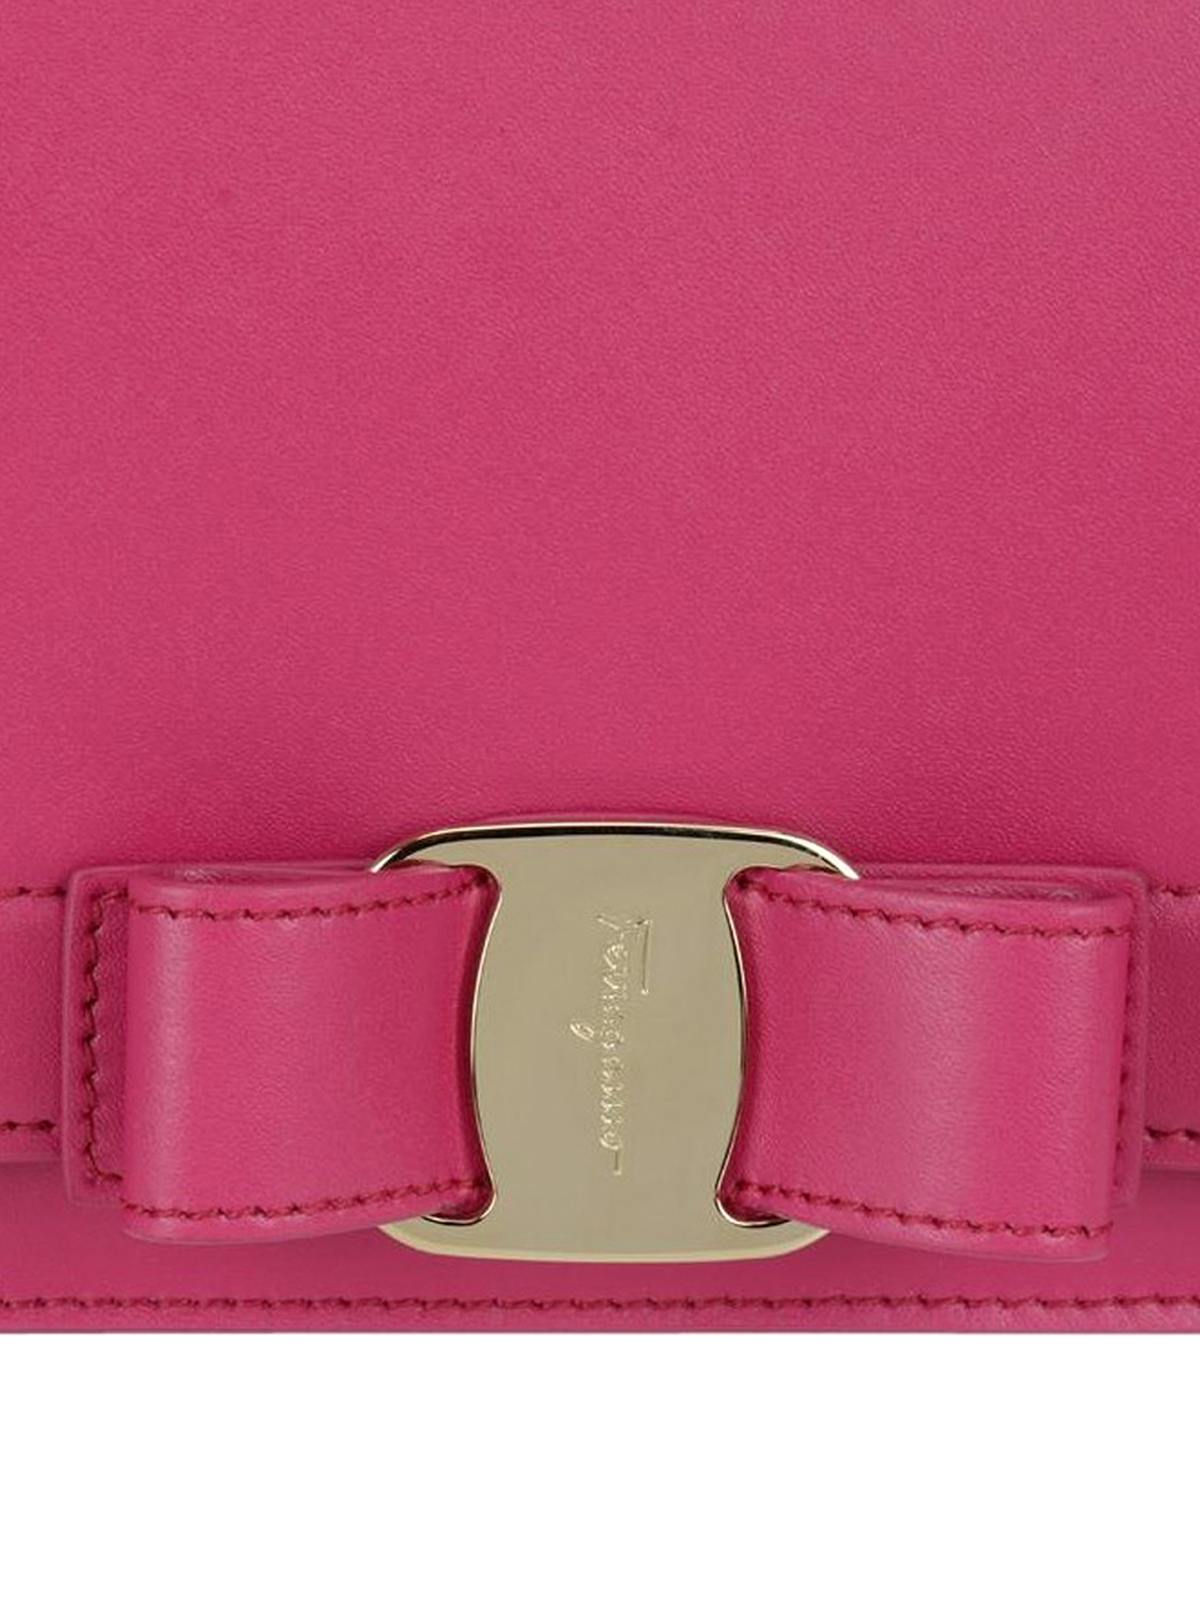 Salvatore Ferragamo Rainbow Vara fuchsia small bag